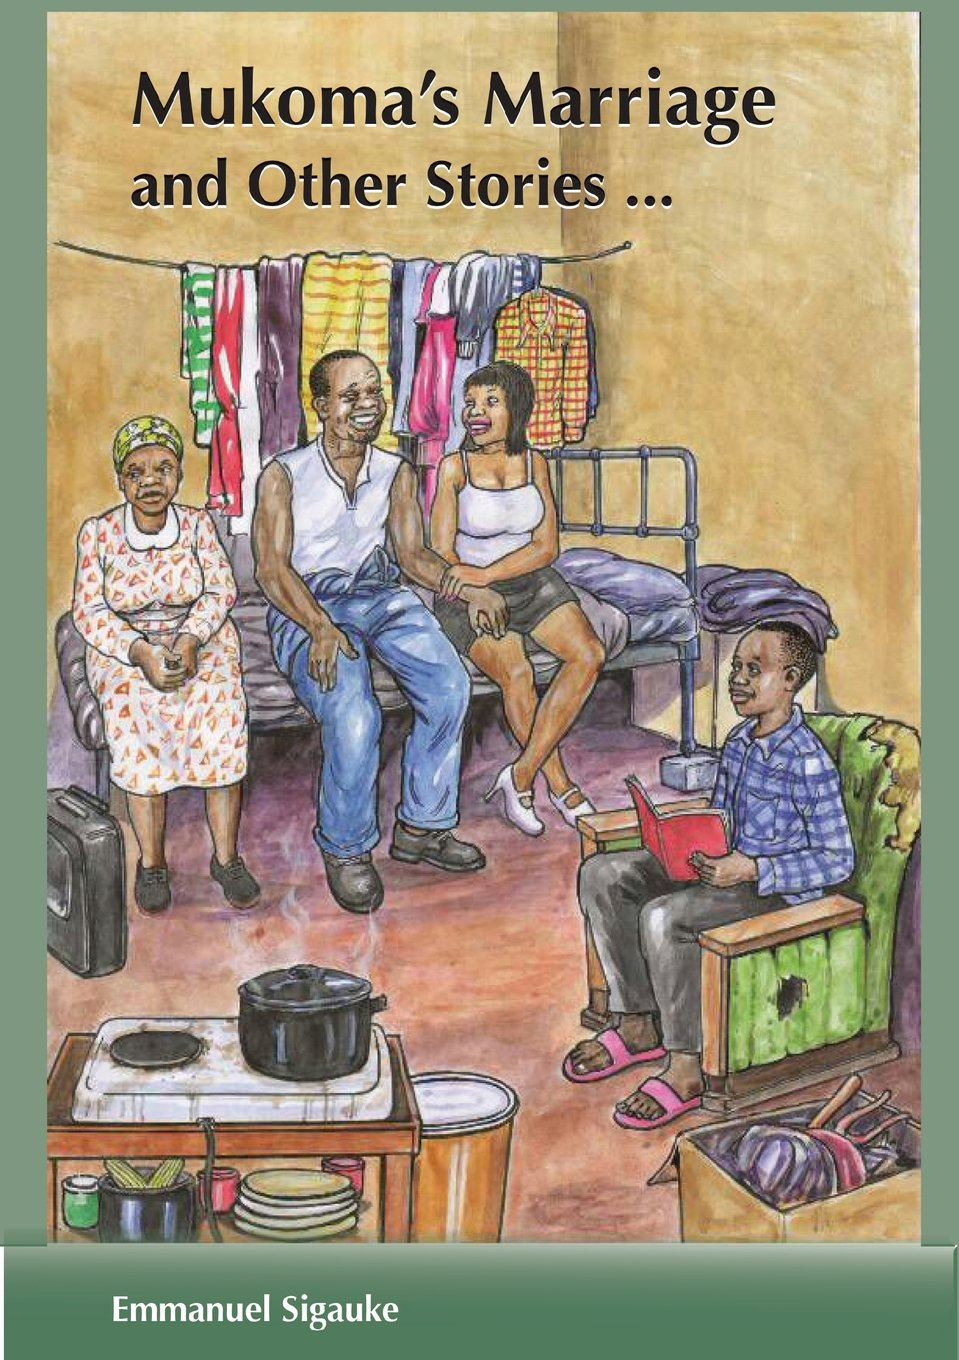 Mukoma's Marriage and other stories by Emmanuel Sigauke